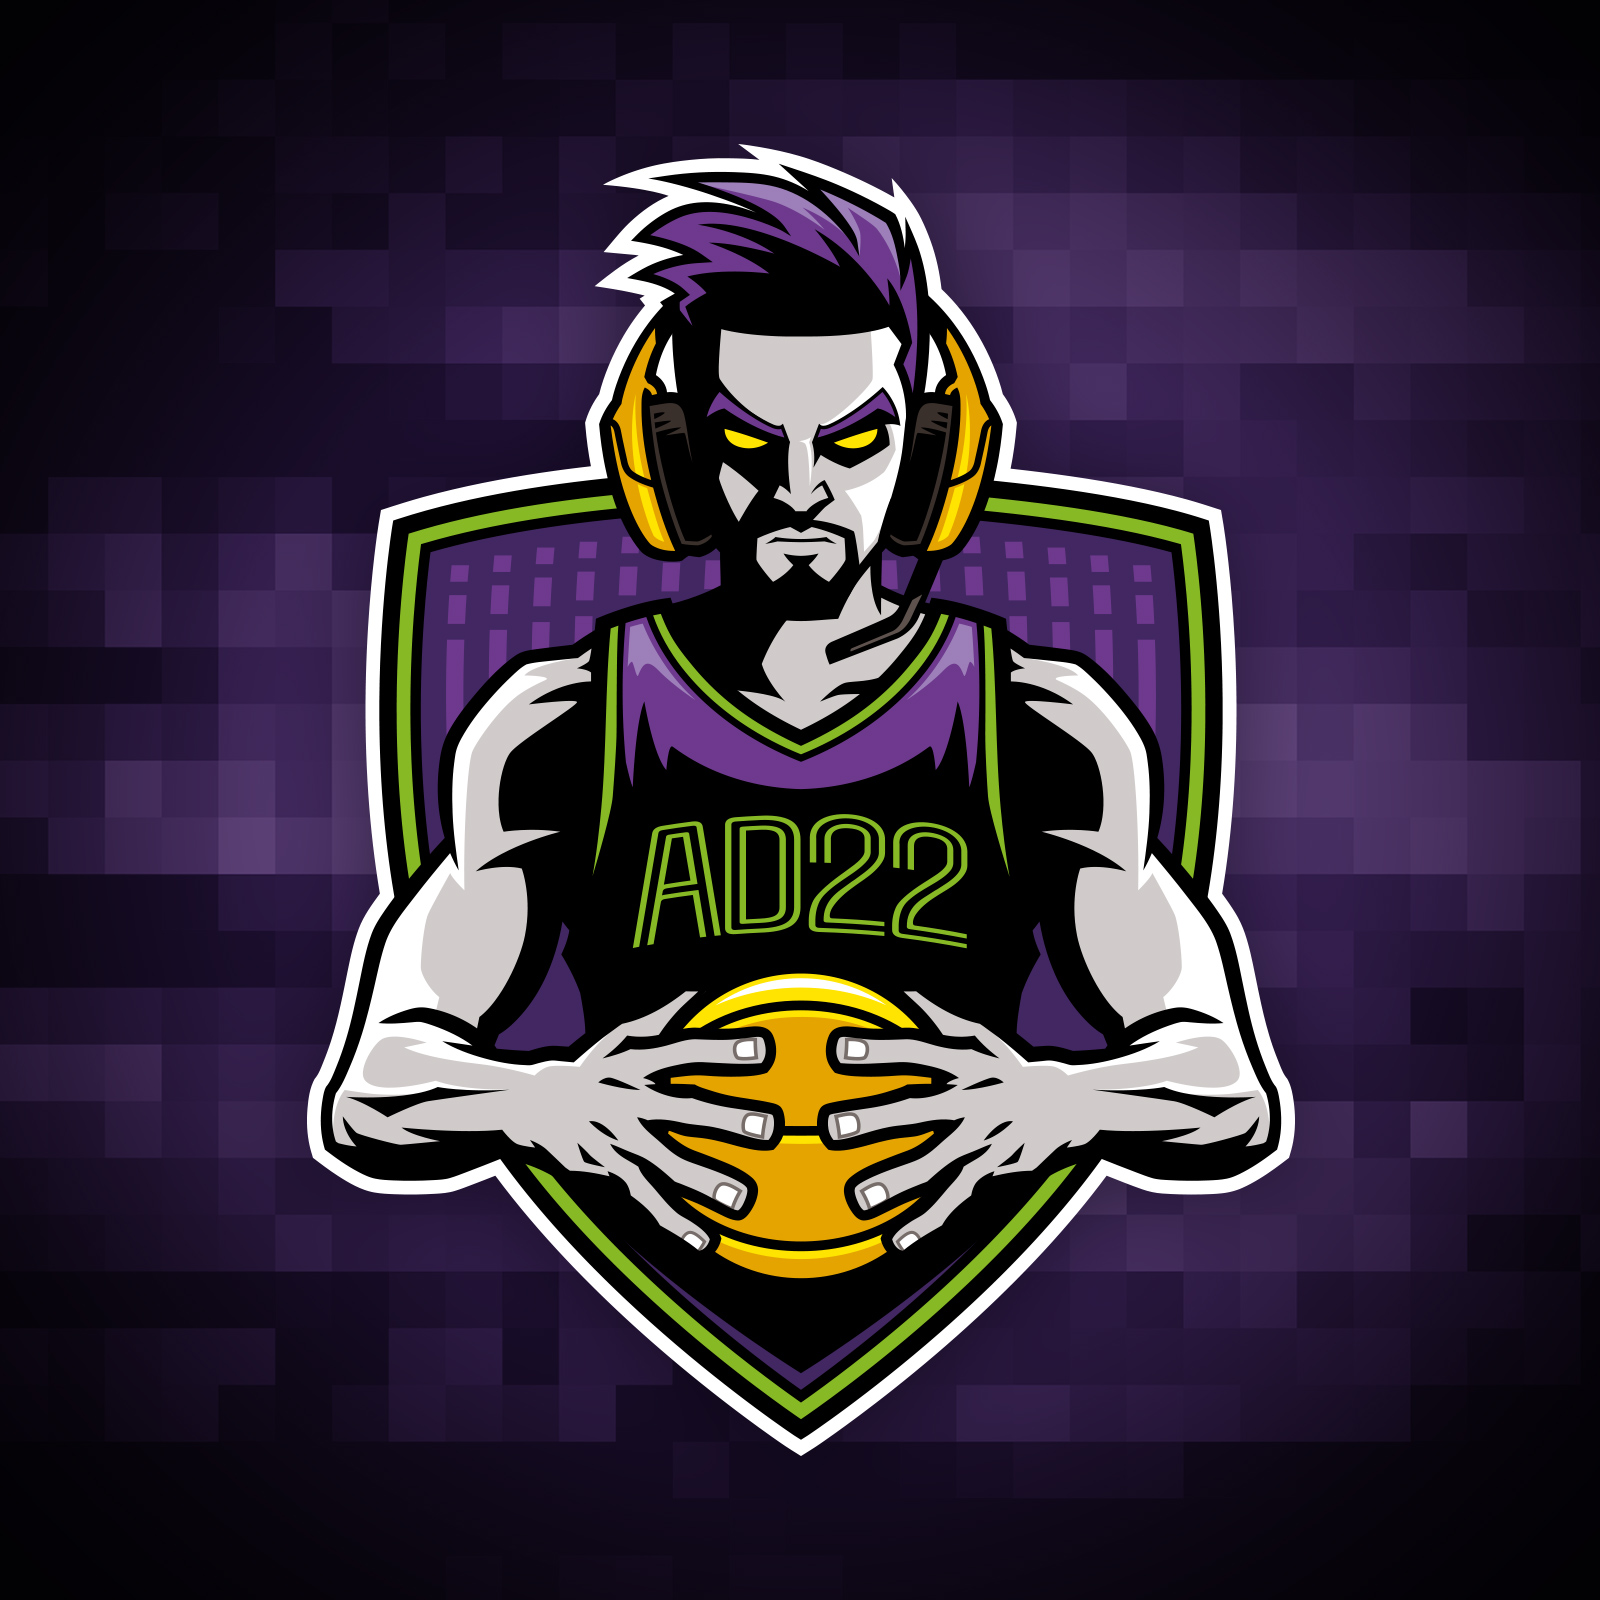 AD22-Twitch_Profile_GAMER